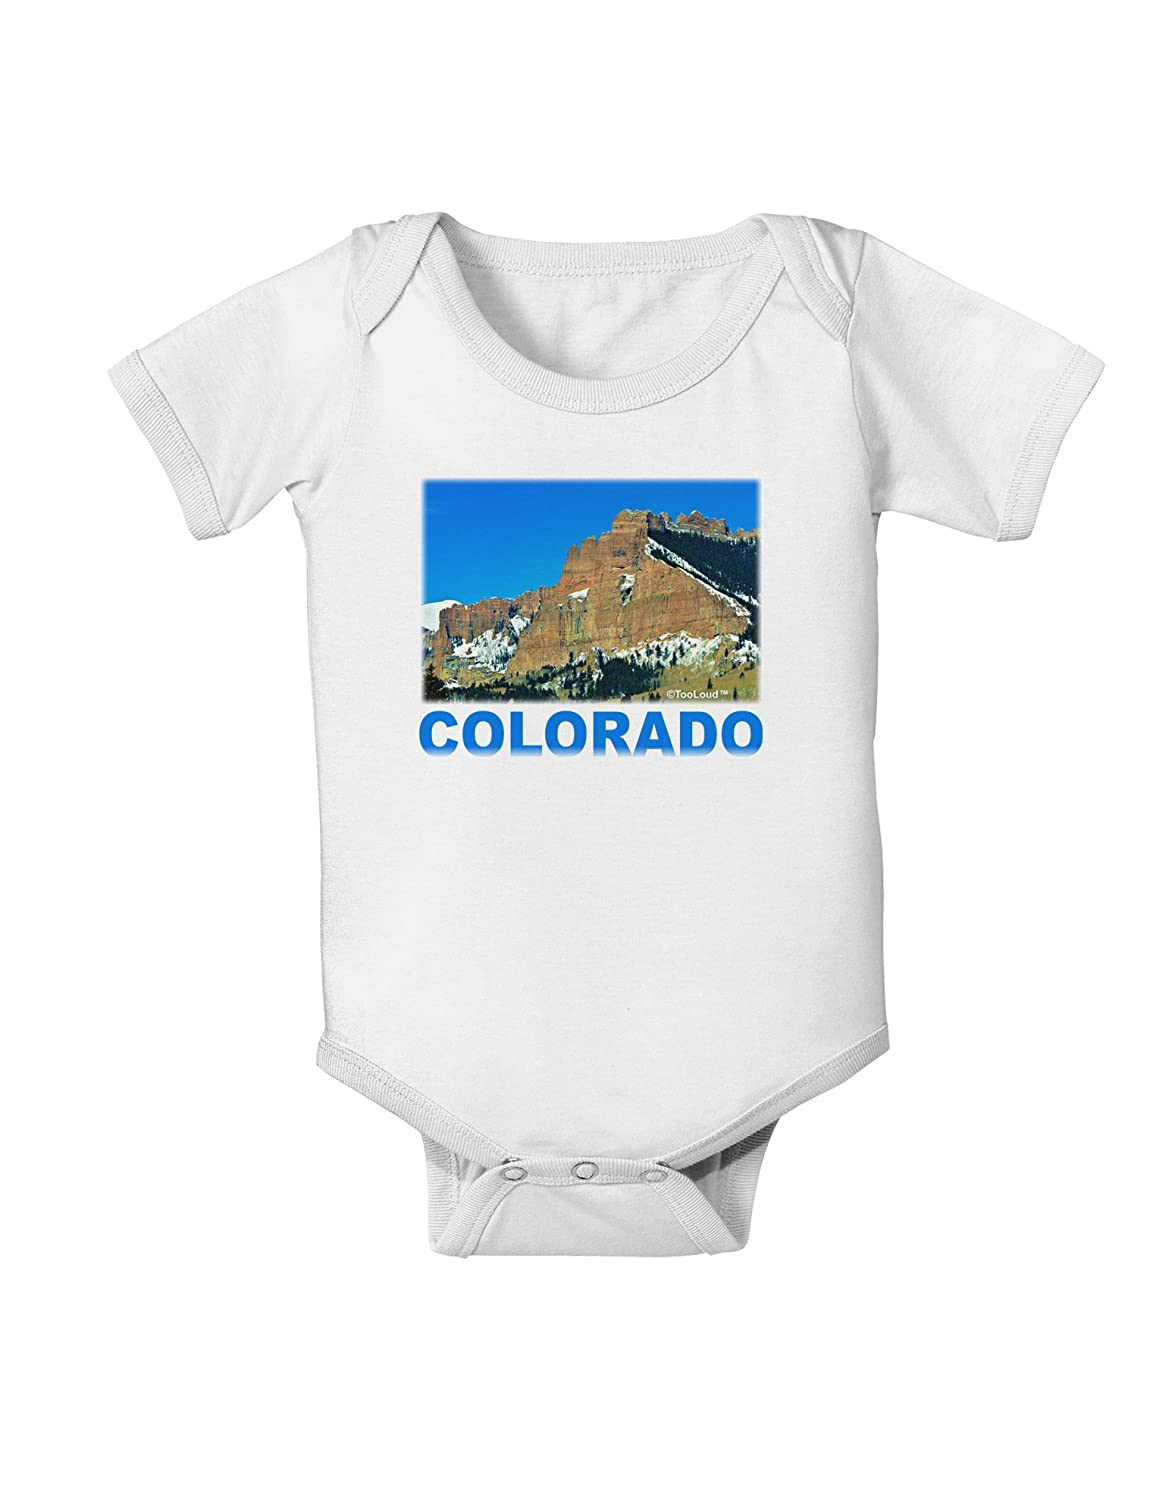 TooLoud Colorado Snowy Mountains Text Baby Romper Bodysuit